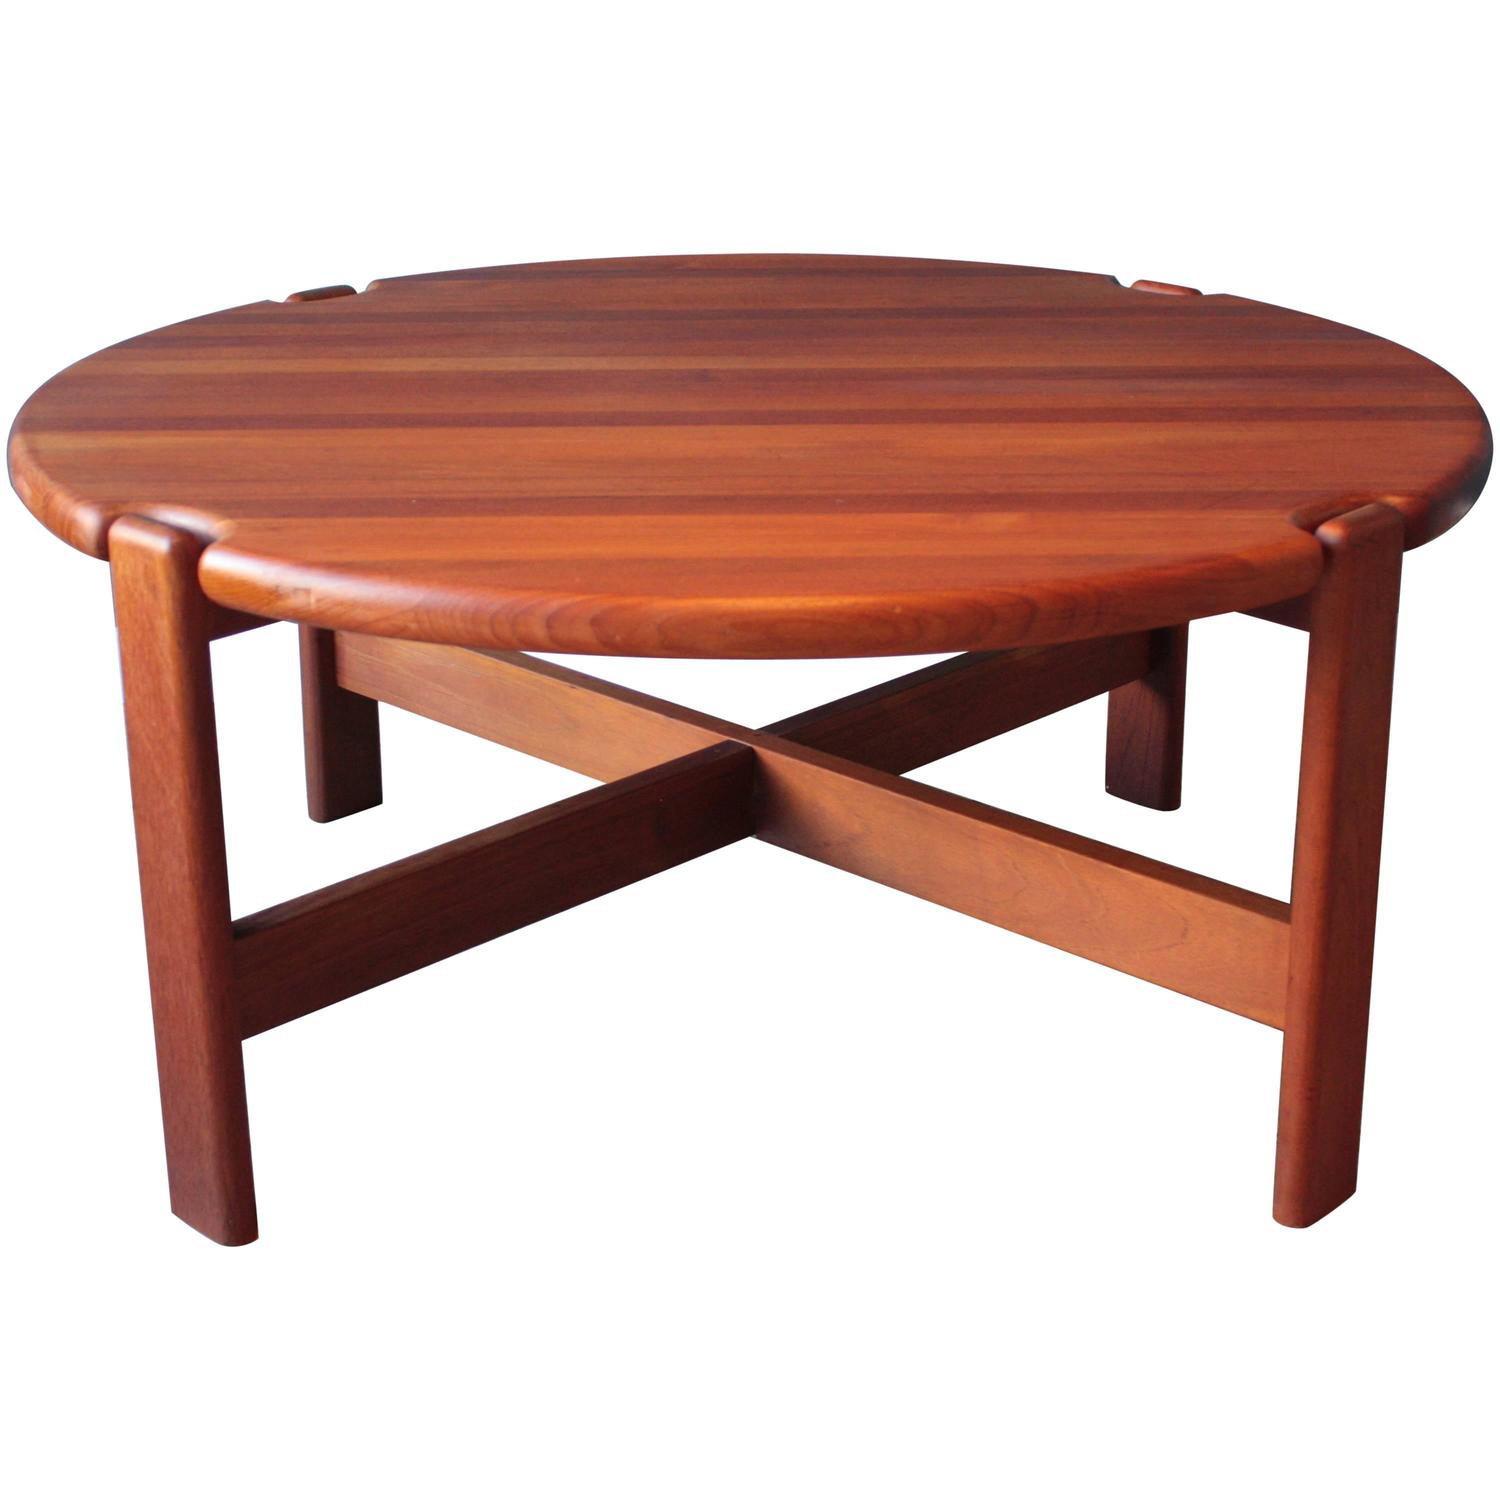 Scandinavian Teak Coffee Table: Scandinavian Round Coffee Table In Solid Teak, 1970s For